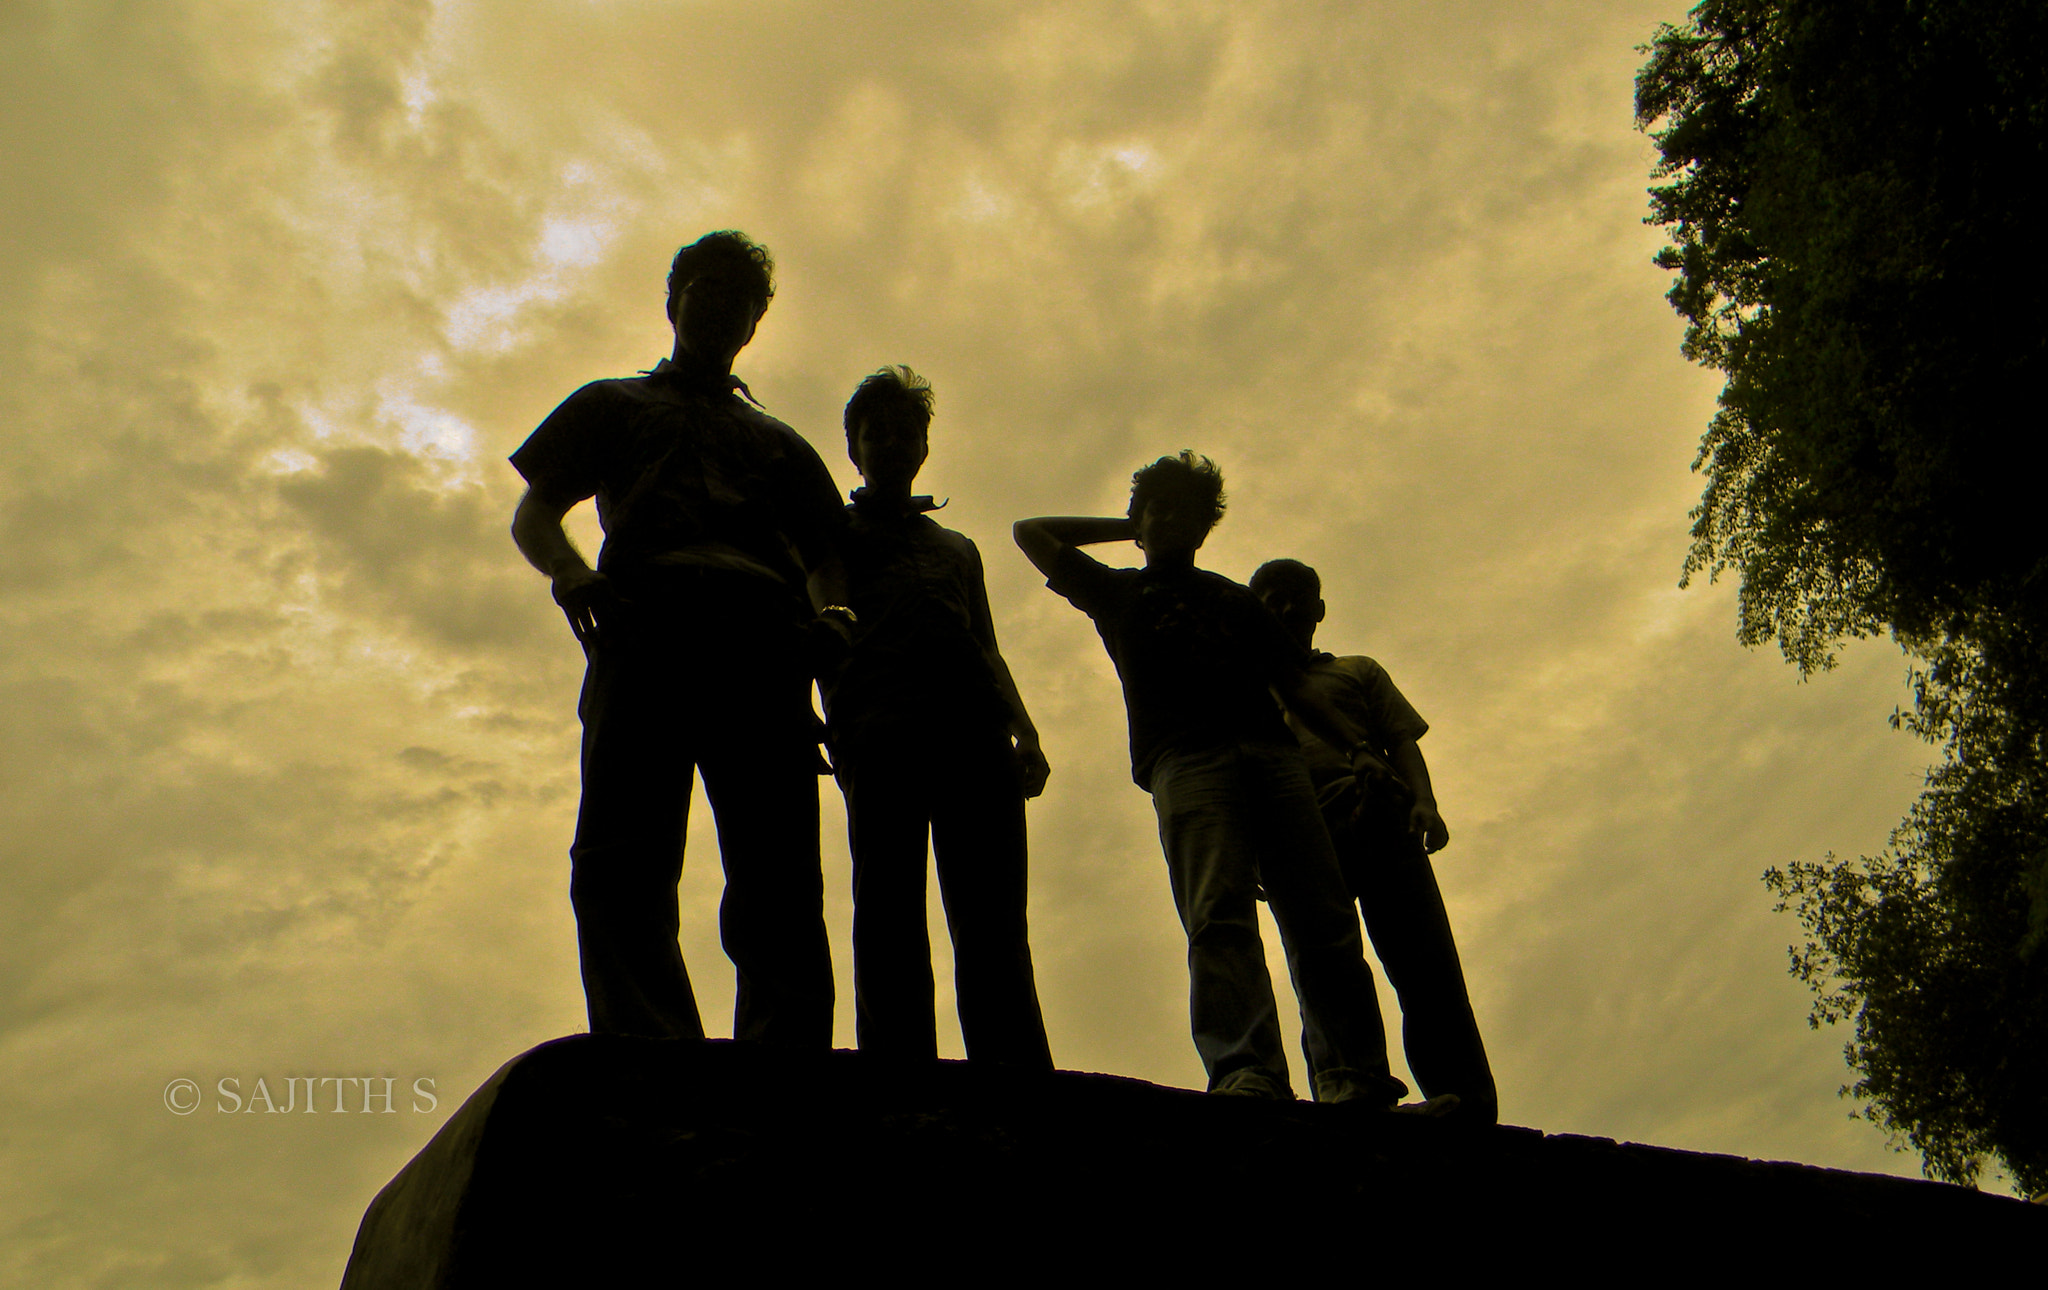 Photograph Friends by Sajith S on 500px